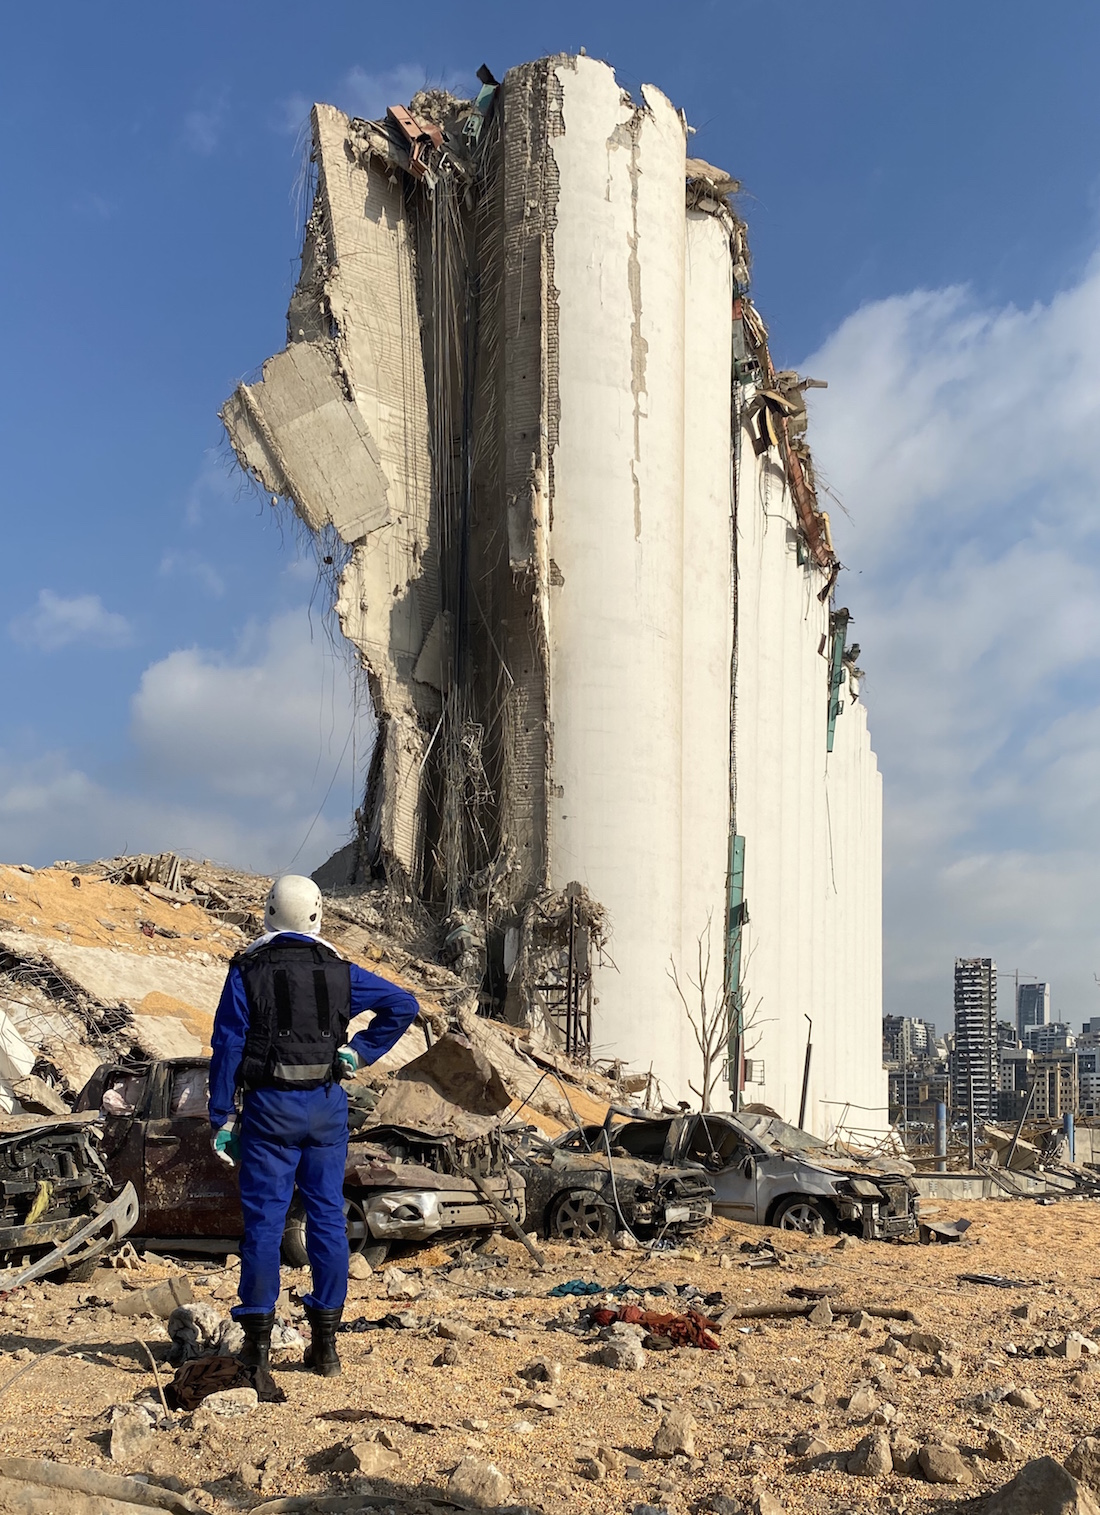 A rescue worker stands by the Beirut Port grain silo during a search operation. Beirut, Lebanon. August 6, 2020. (Zein Jaafar/The Public Source)